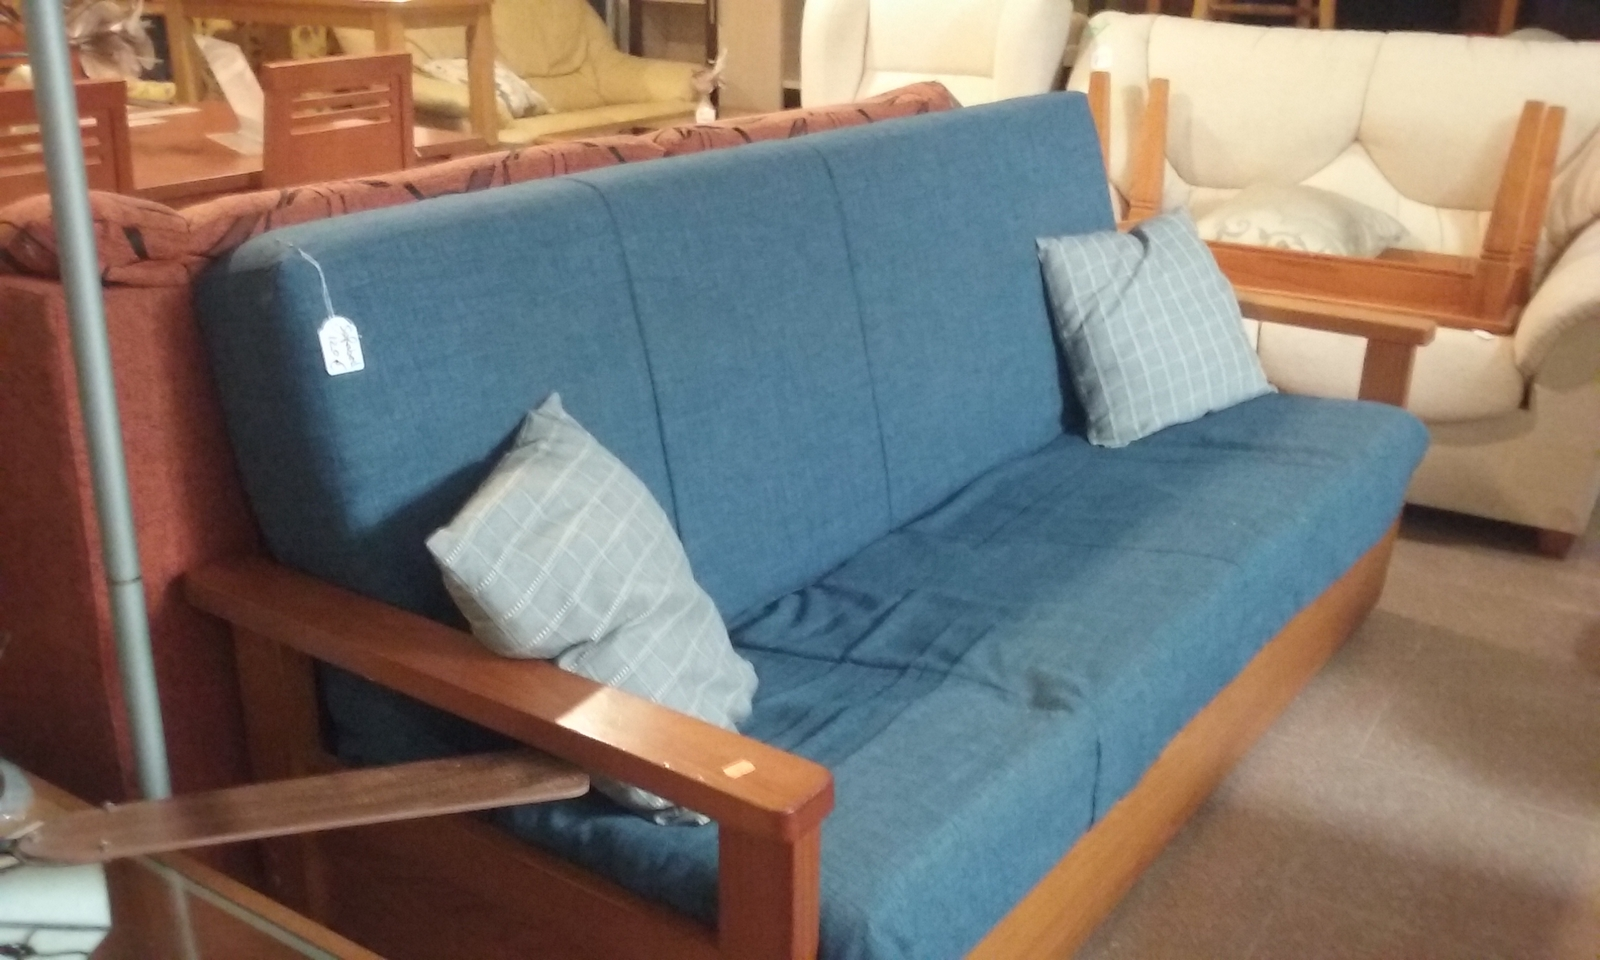 New2you furniture second hand sofas sofa beds for the for Second hand bedroom furniture